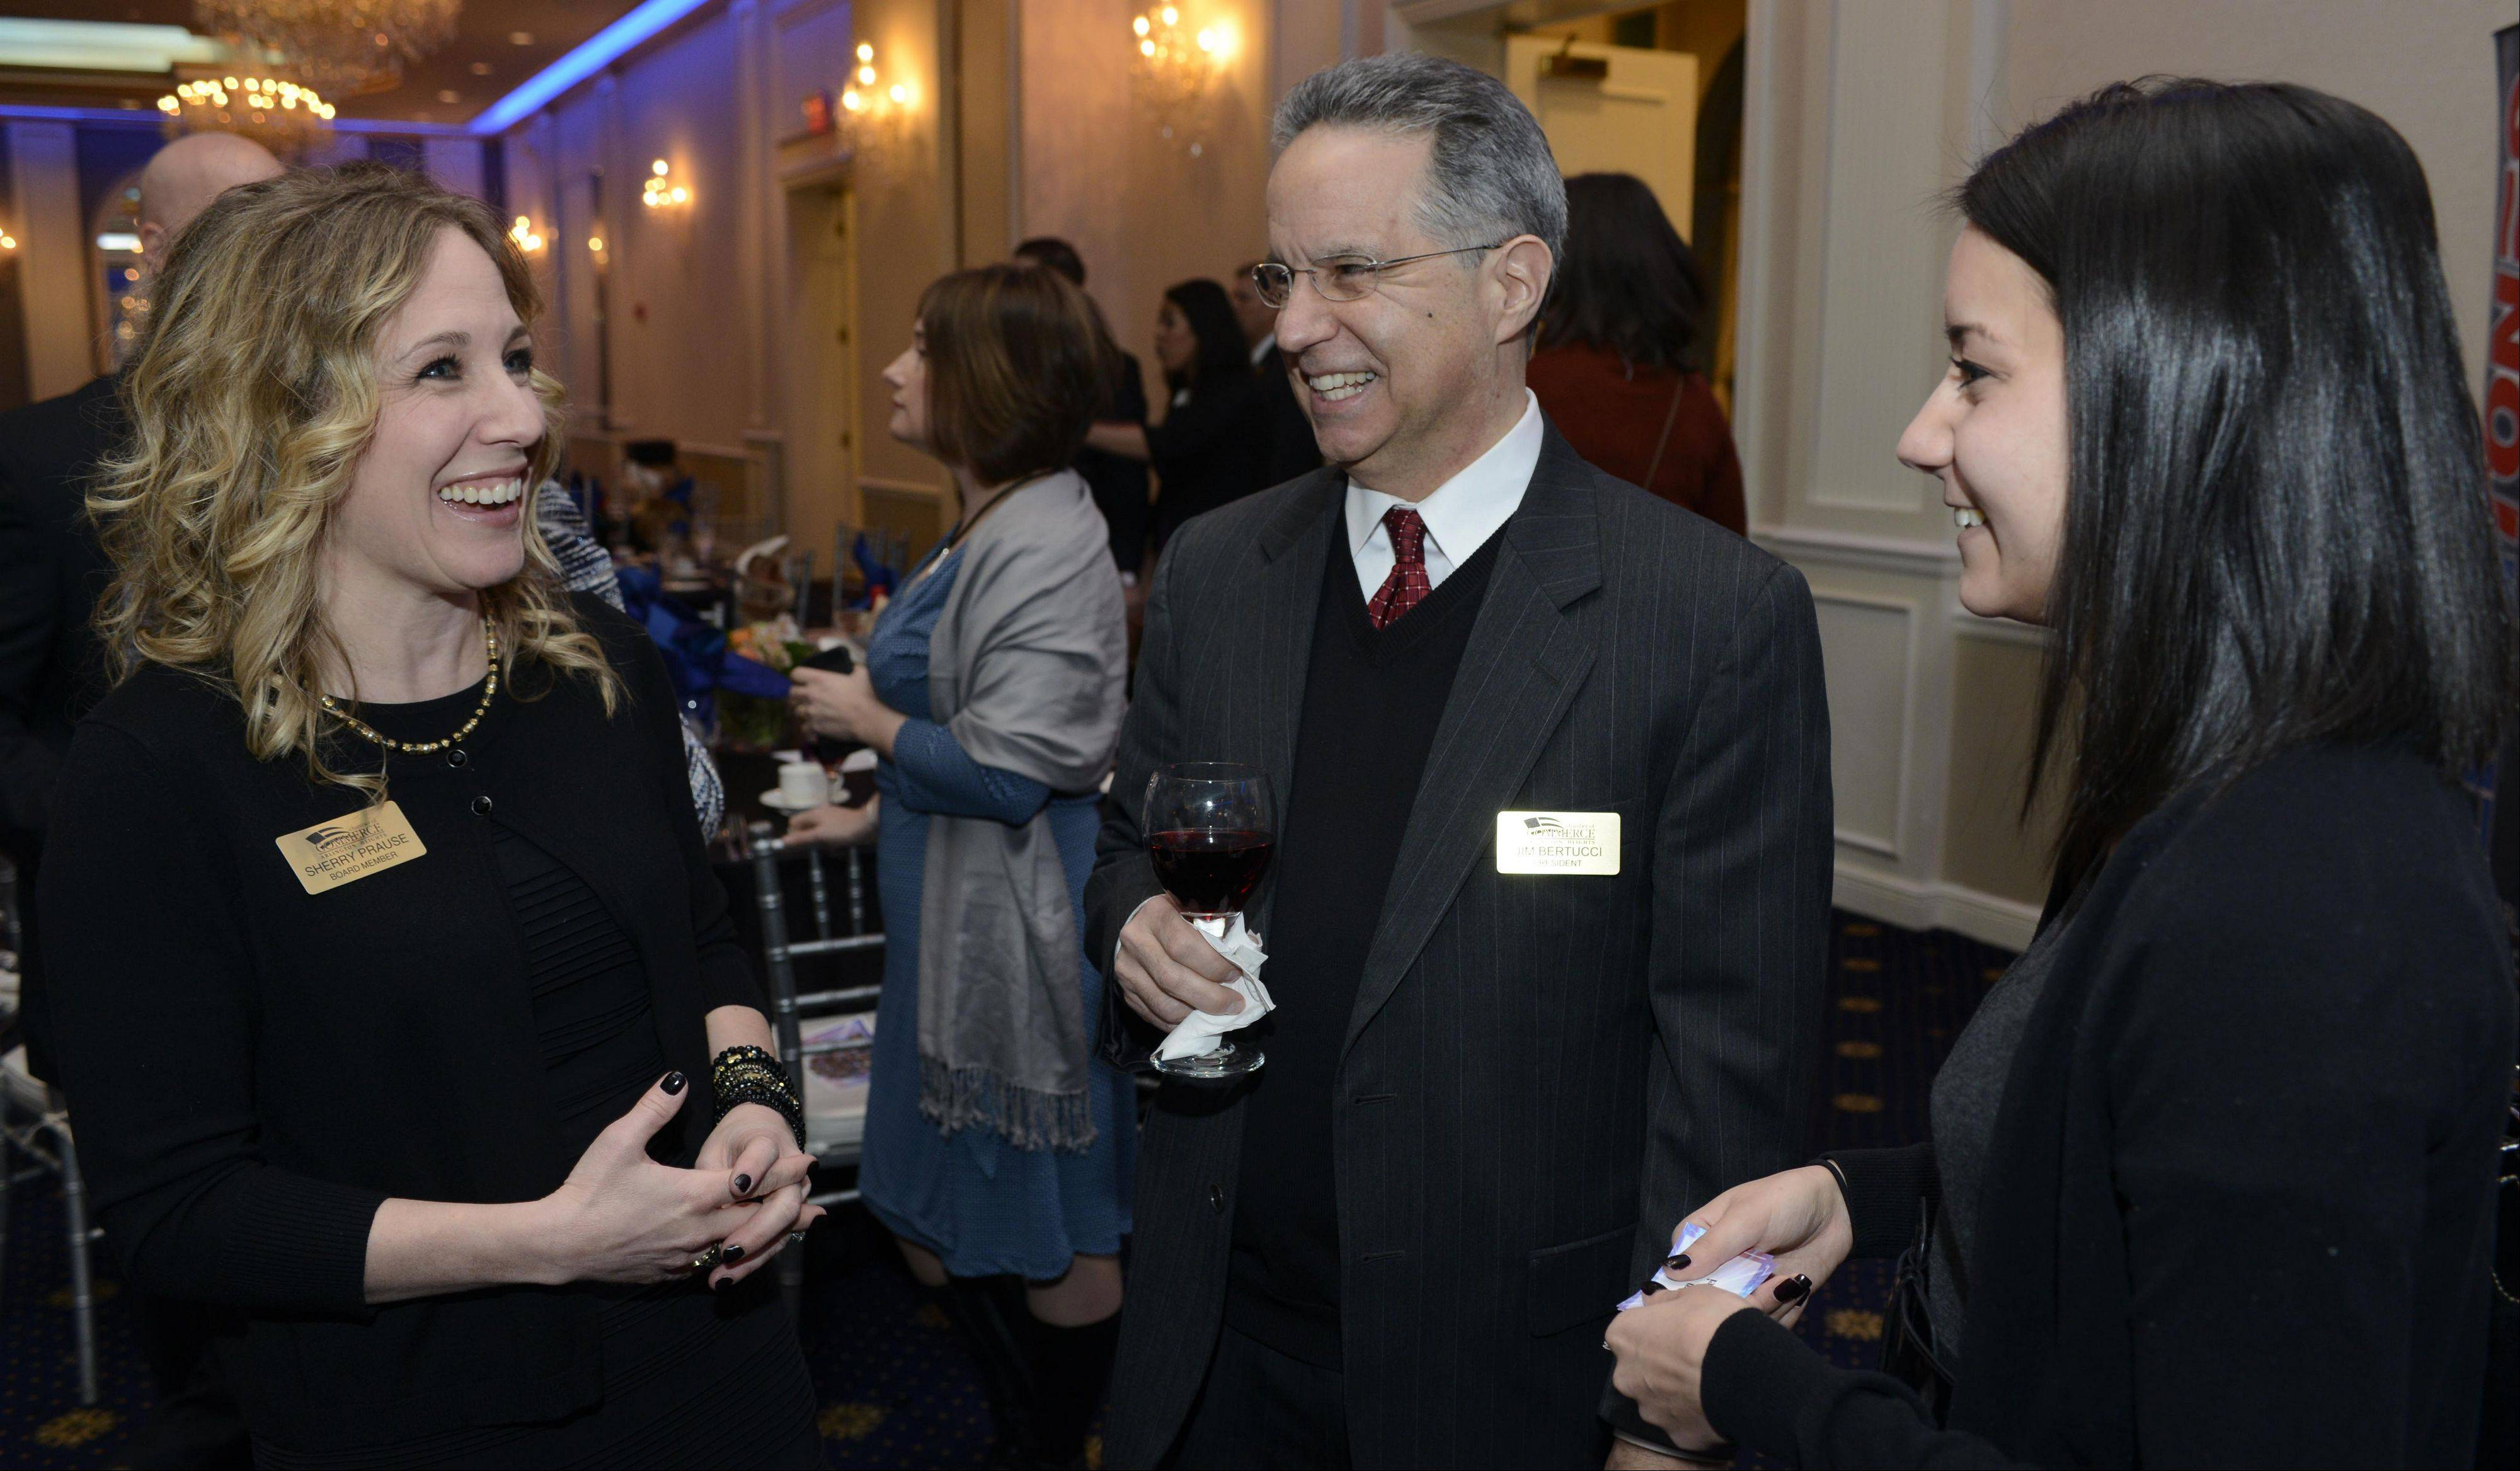 Arlington Heights Chamber of Commerce board member Sherry Prause, left, chats with new chamber President Jim Bertucci and his daughter, Kim Costello, during the chamber's installation dinner and awards ceremony Thursday at European Crystal Banquets in Arlington Heights.